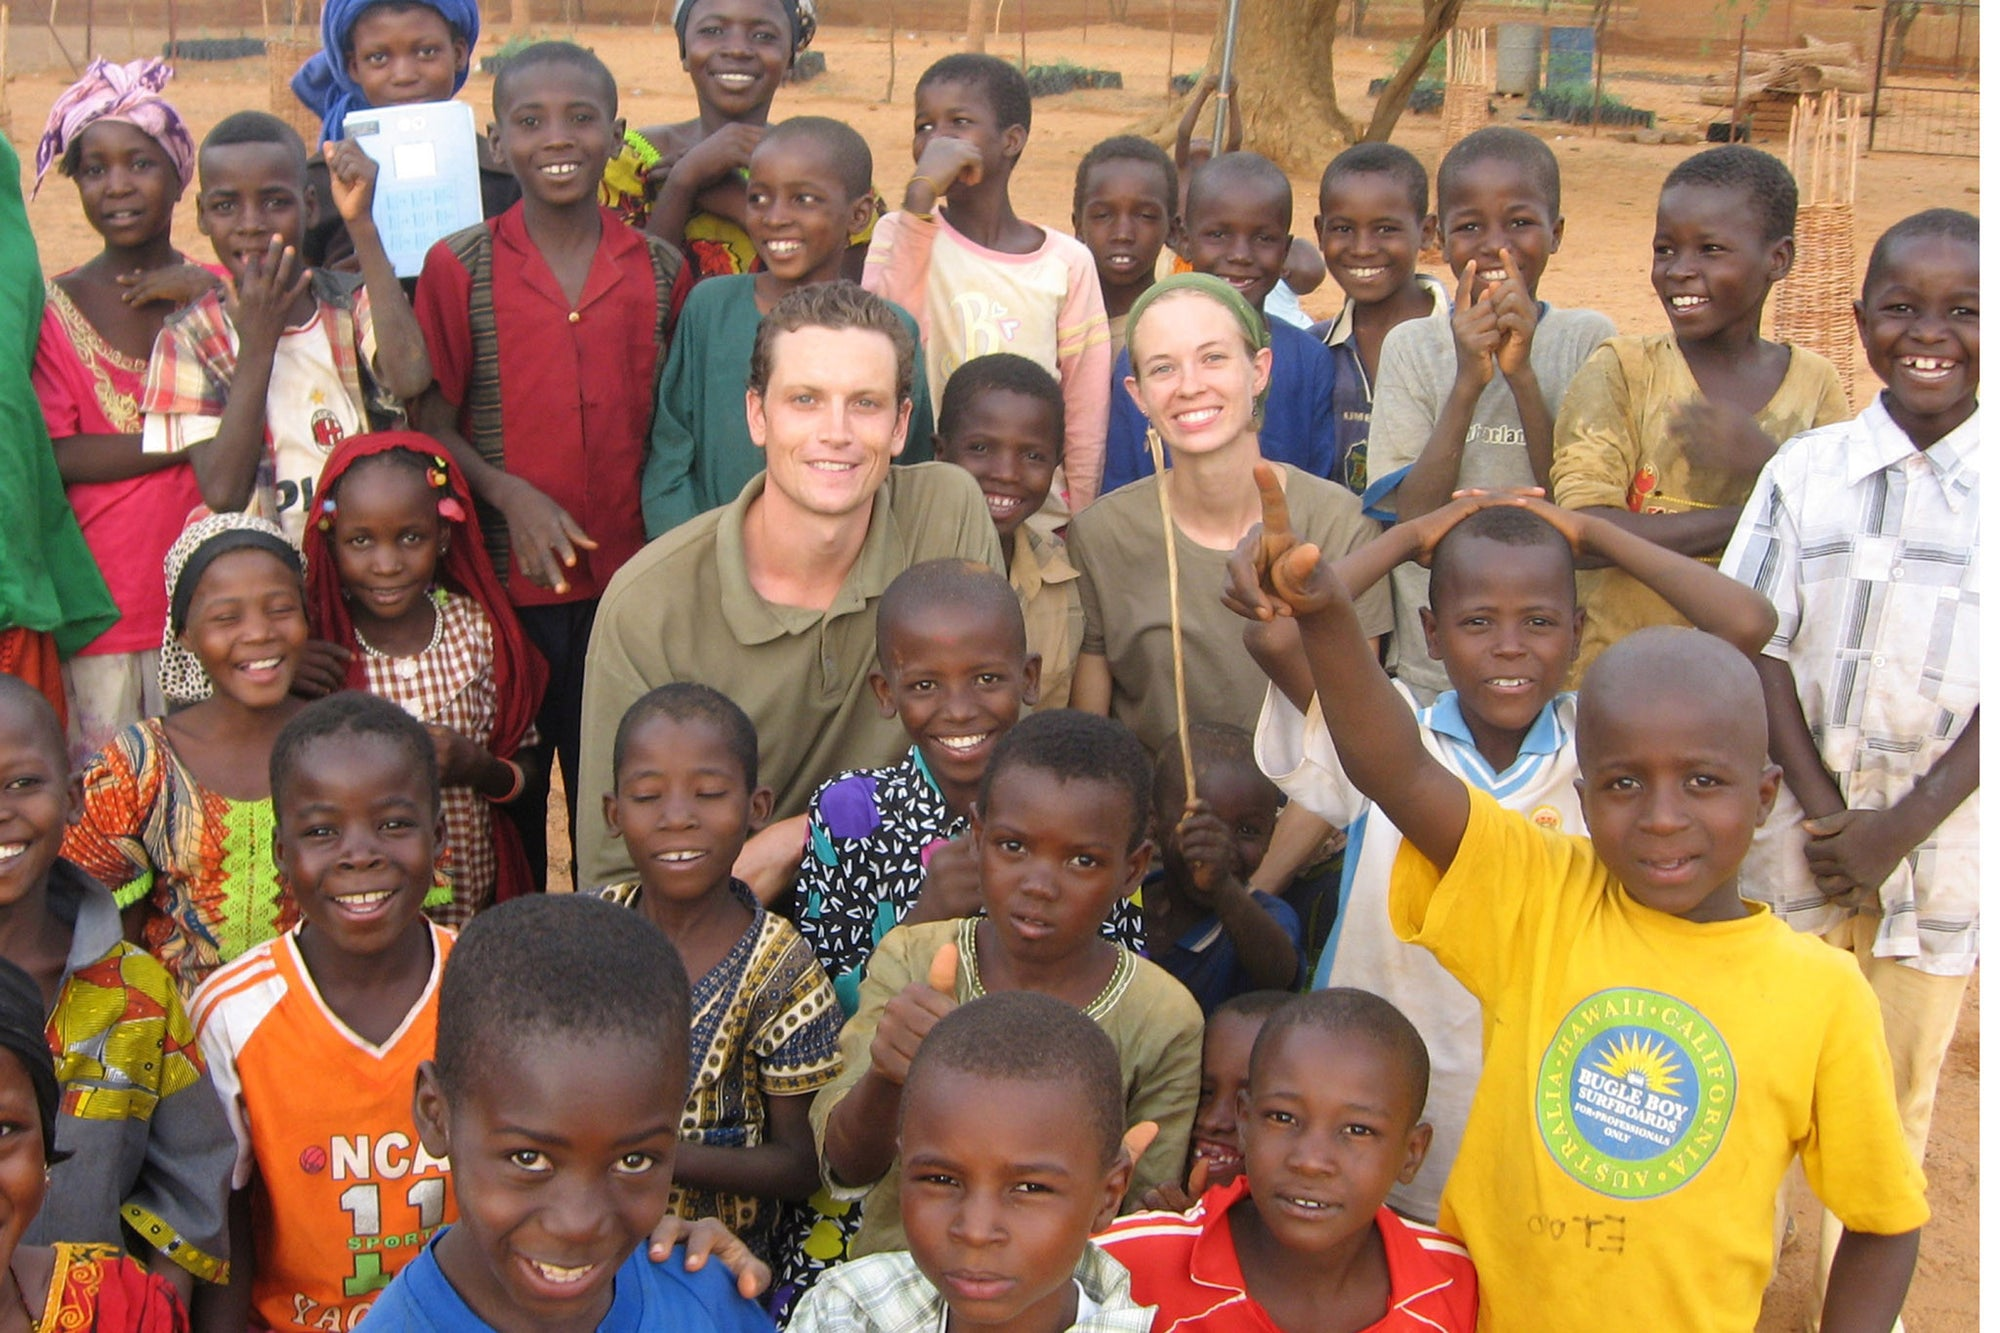 GIVING BACK | Memories of our Peace Corps service in Niger